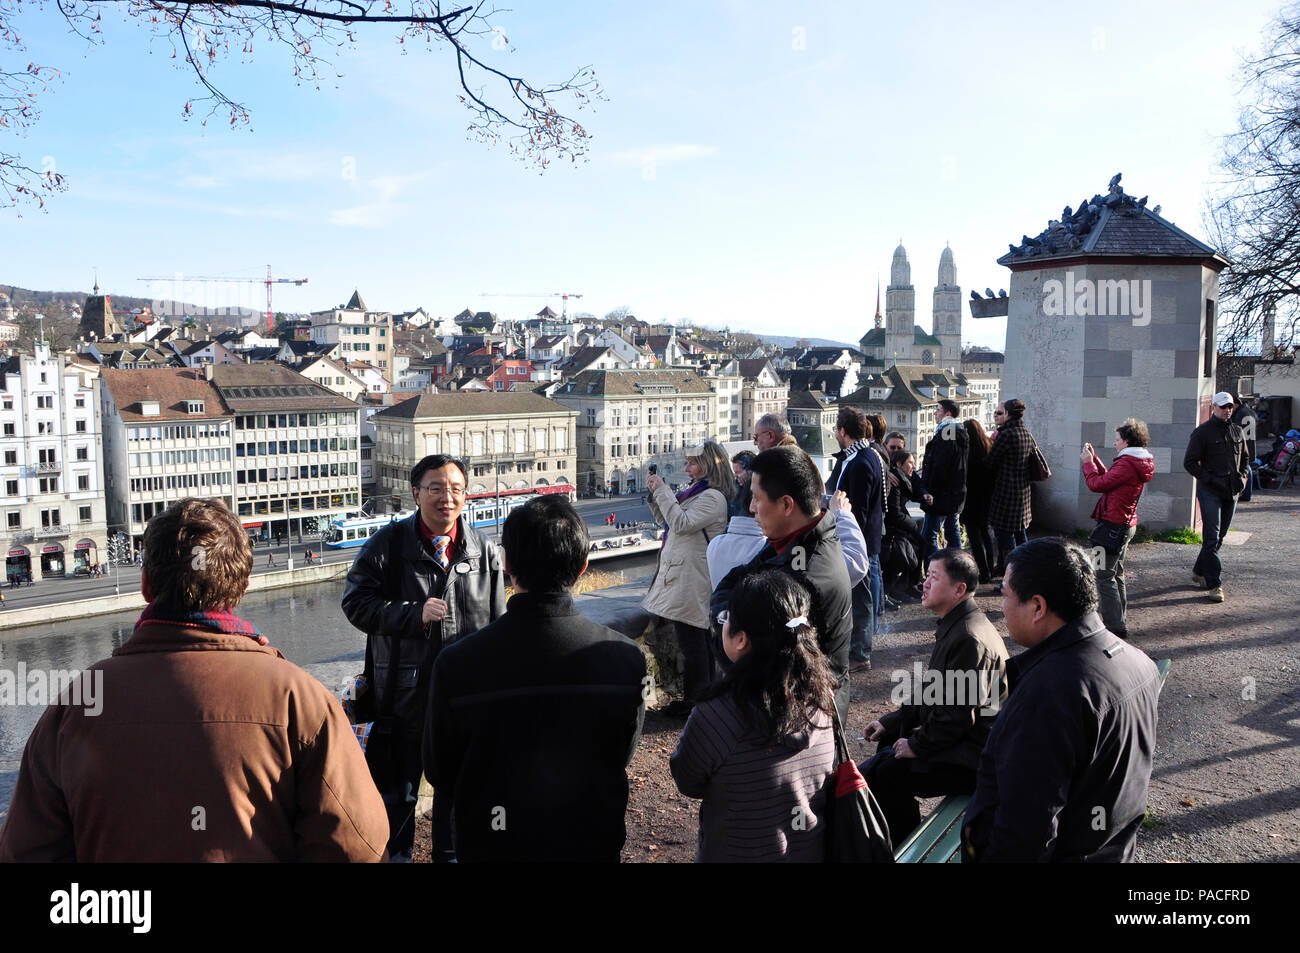 The Linden-Hof in the heart of the old town of Zürich is an attractiv tourist spot, where the city-guides show the chinese visitors the center of Züri - Stock Image